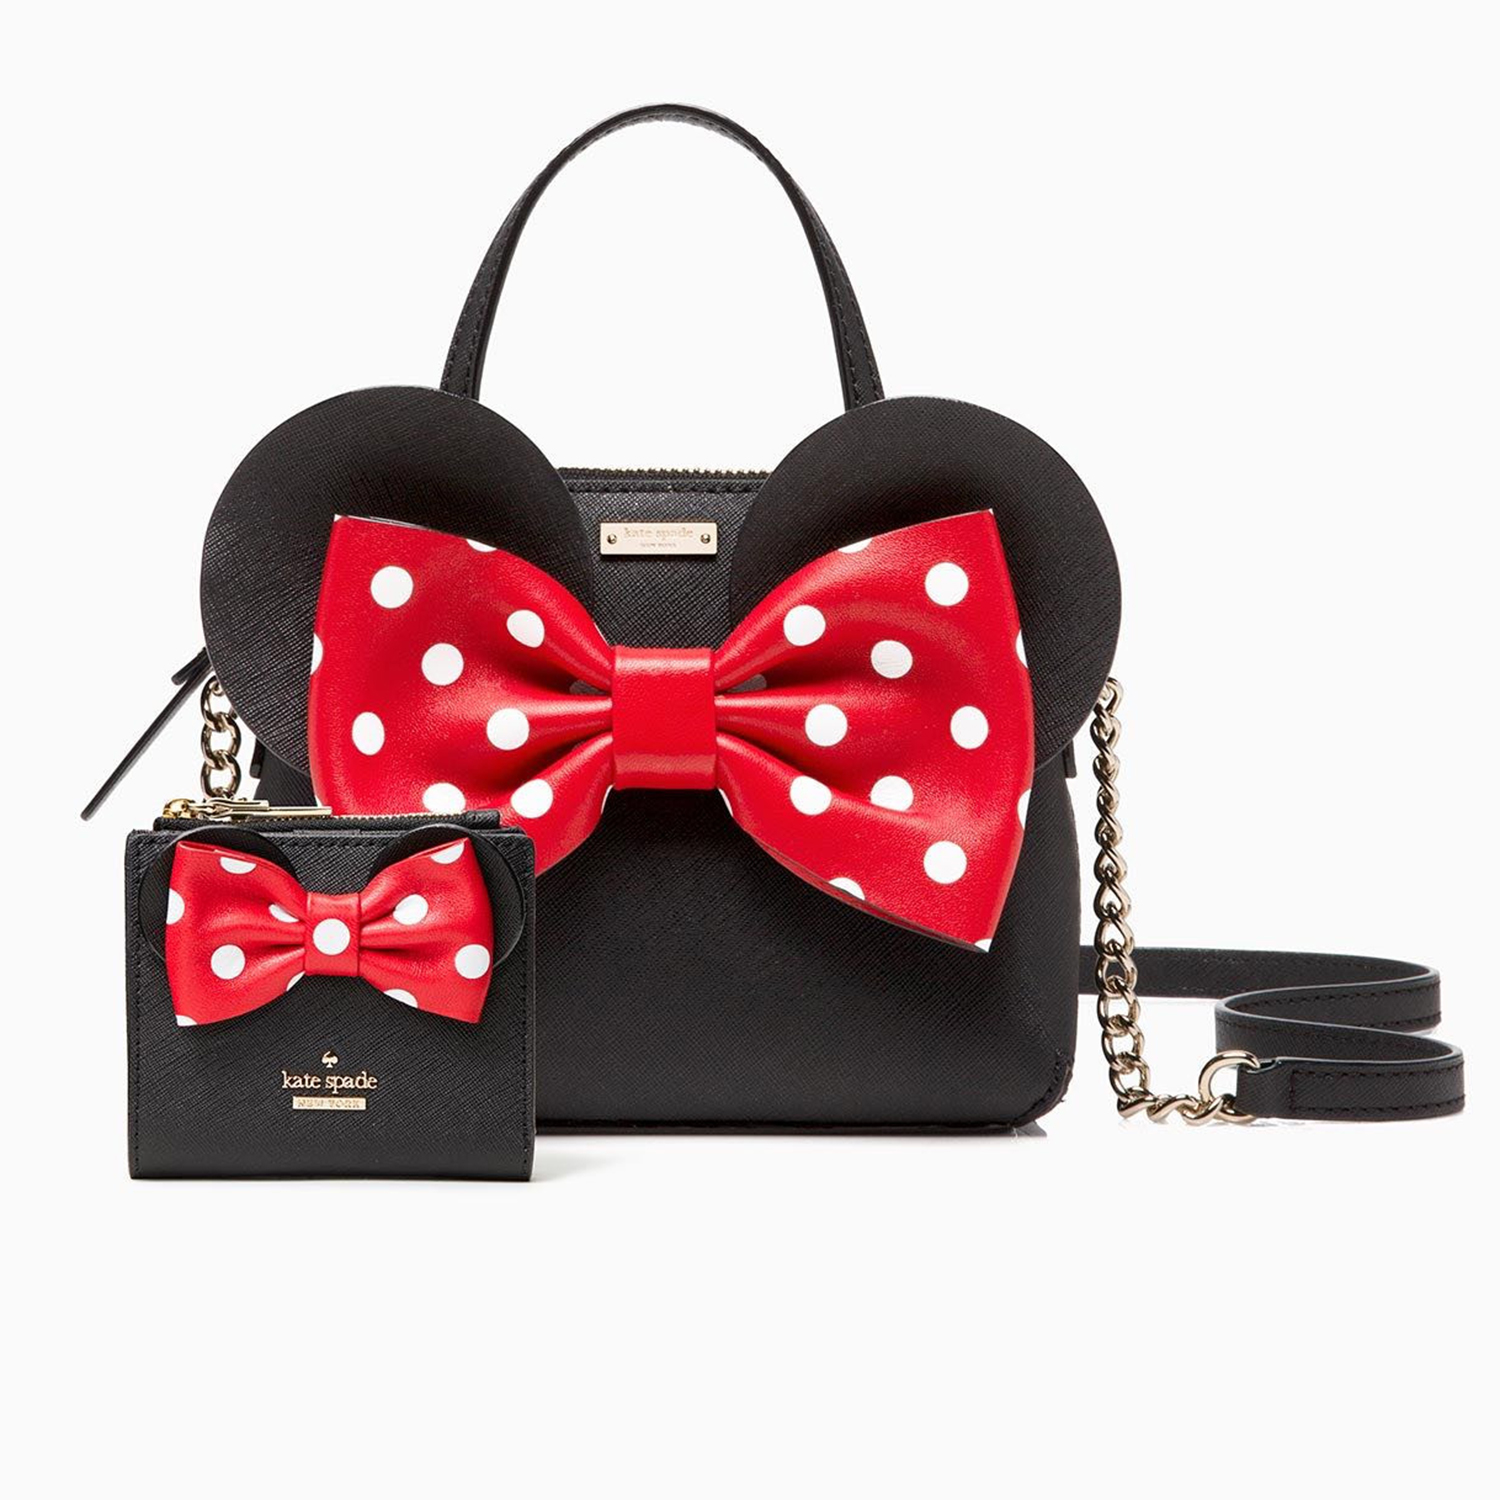 Kate Spade New York X Minnie Mouse Bundle